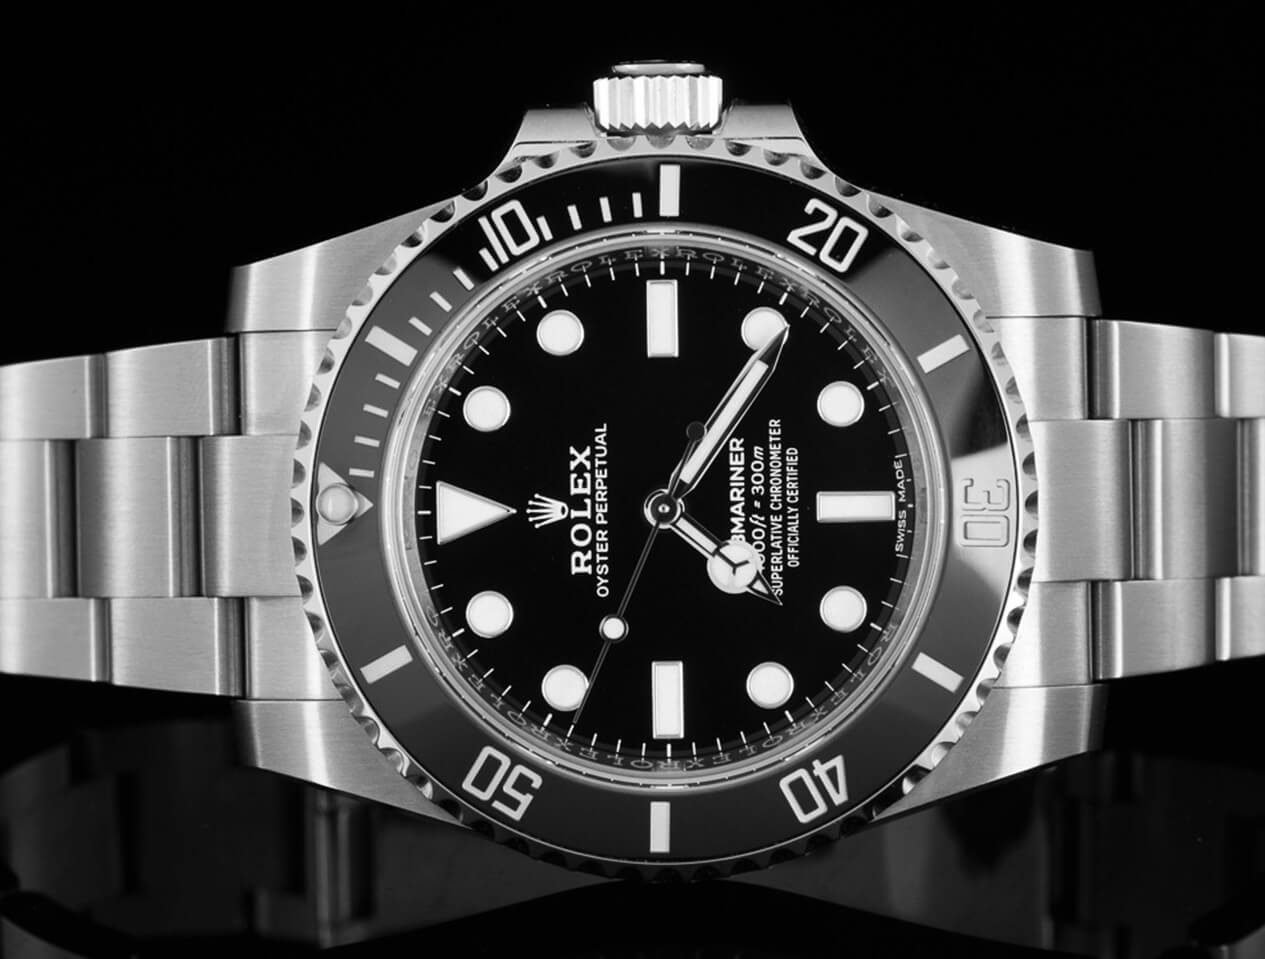 Rolex Submariner replica No Date 114060